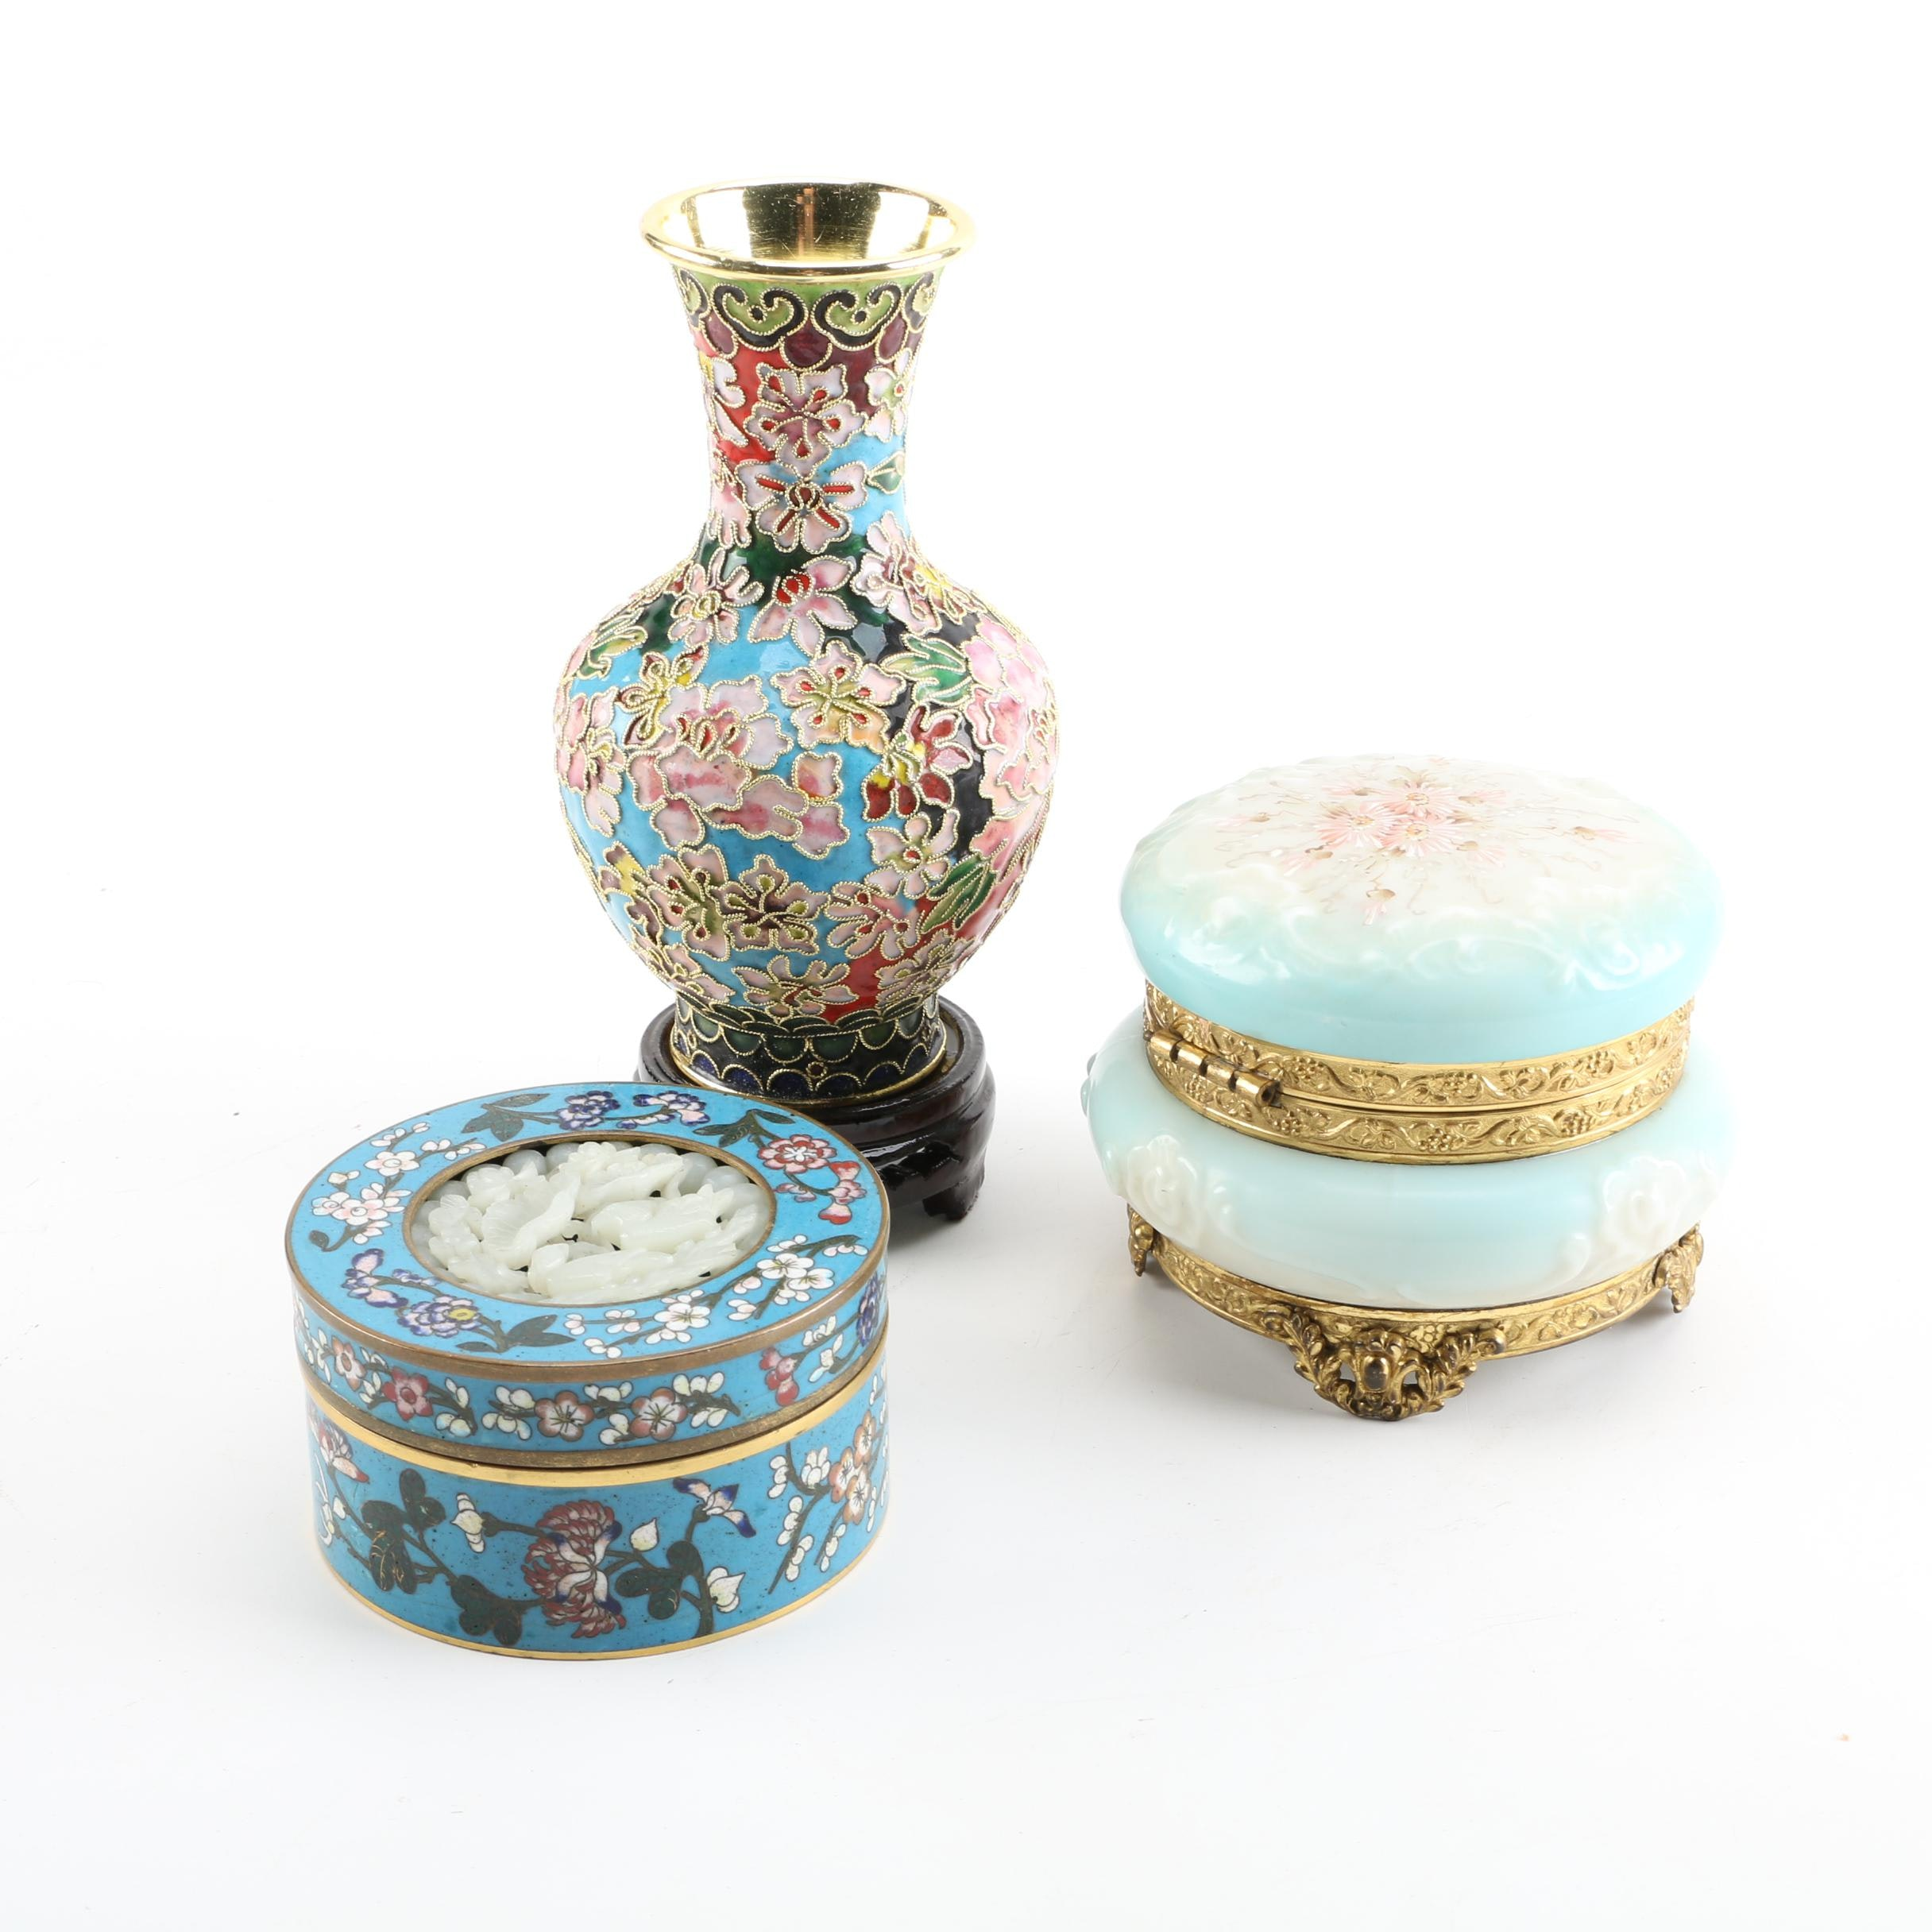 Chinese Cloisonné Decor and Trinket Box